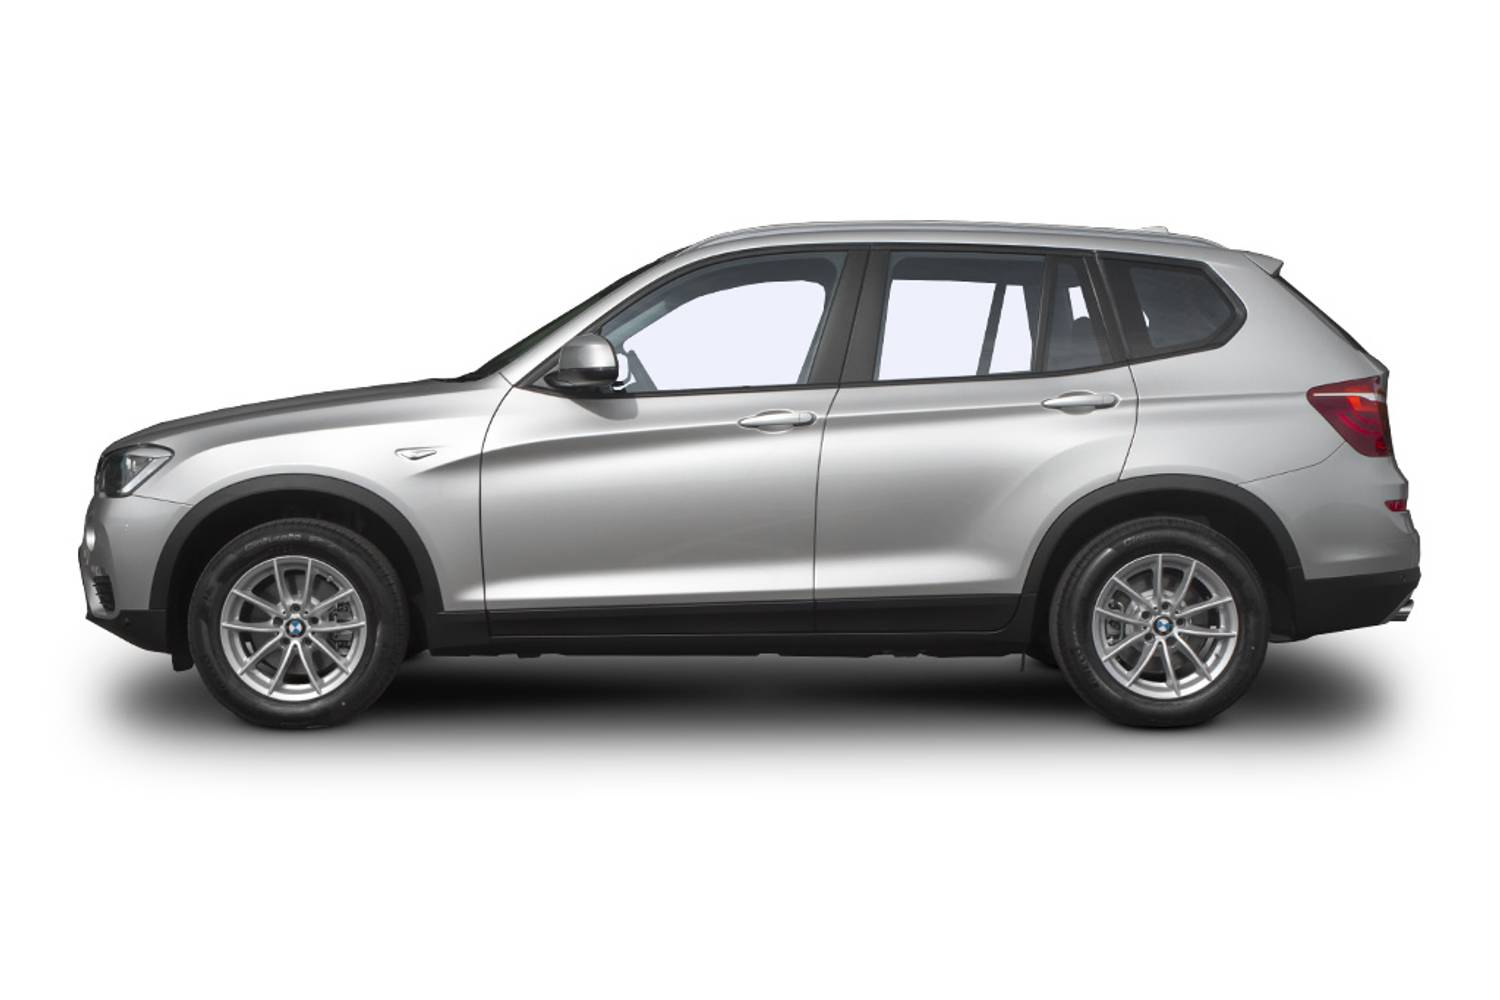 new bmw x3 diesel estate xdrive20d xline 5 door step auto 2014 for sale. Black Bedroom Furniture Sets. Home Design Ideas